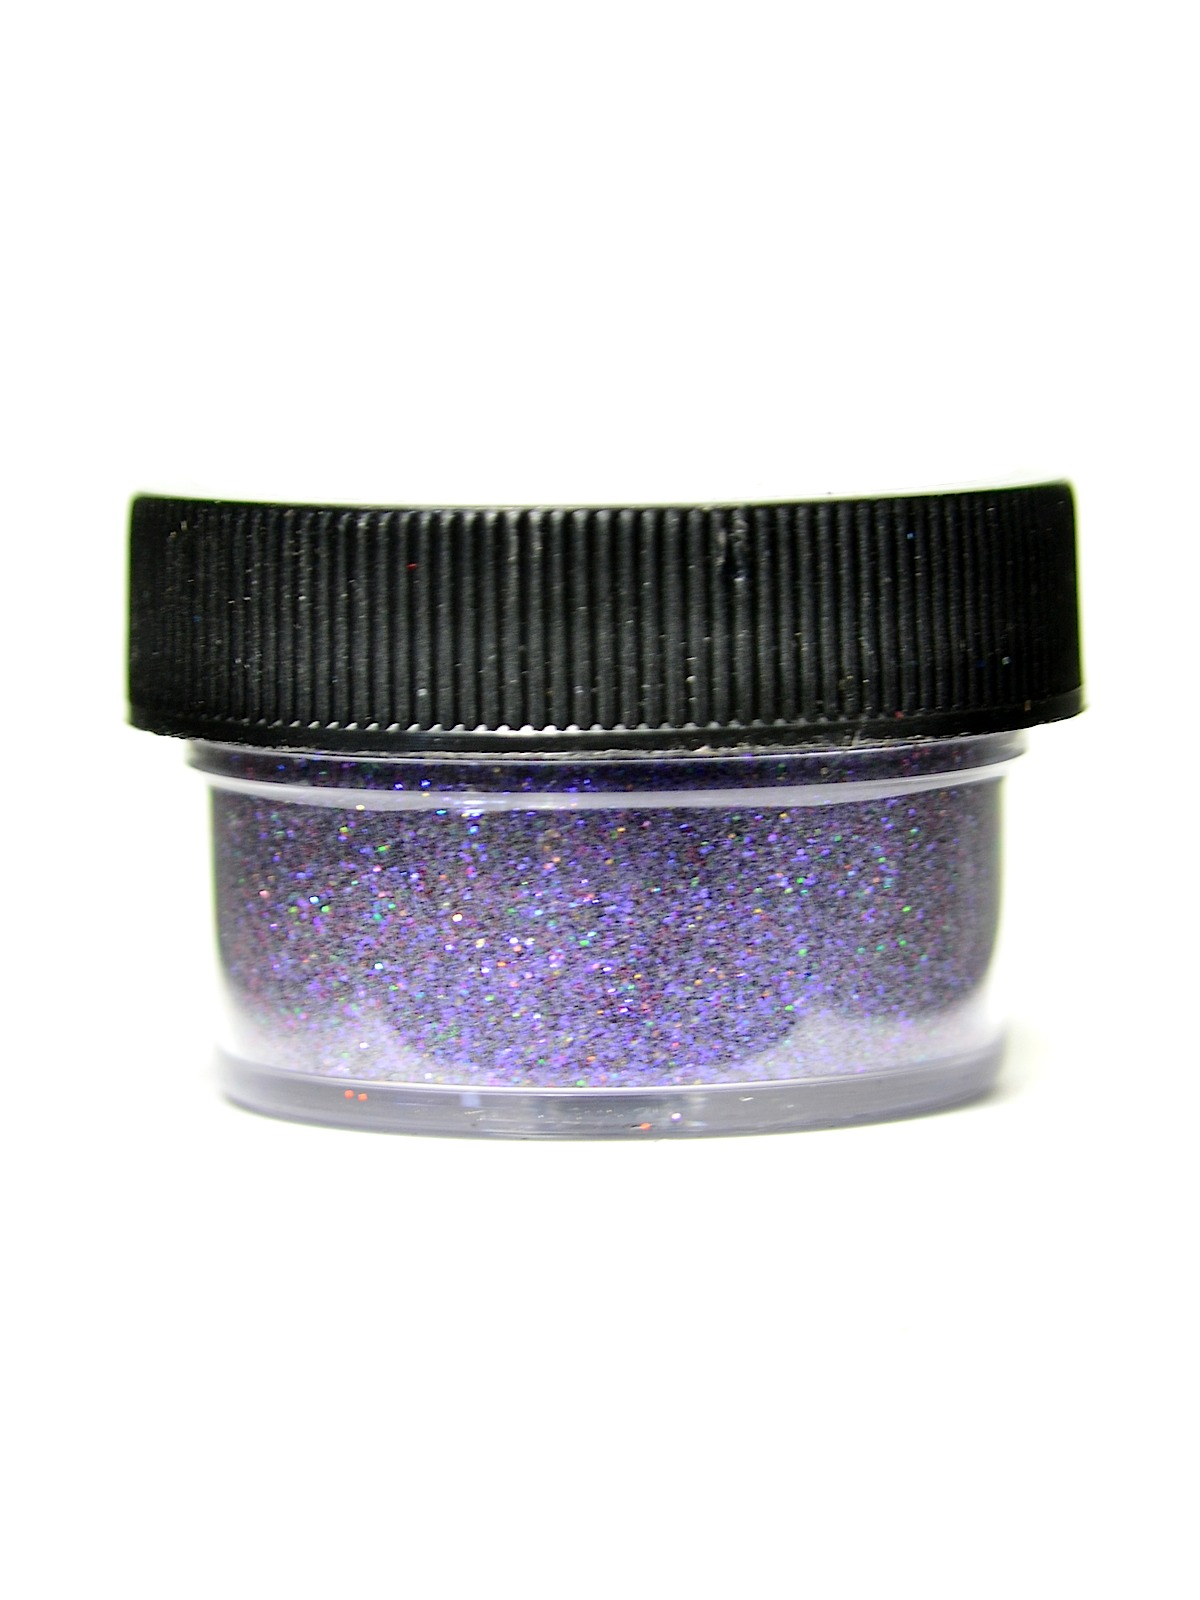 Ultrafine Transparent Glitter Eggplant 1 2 Oz. Jar